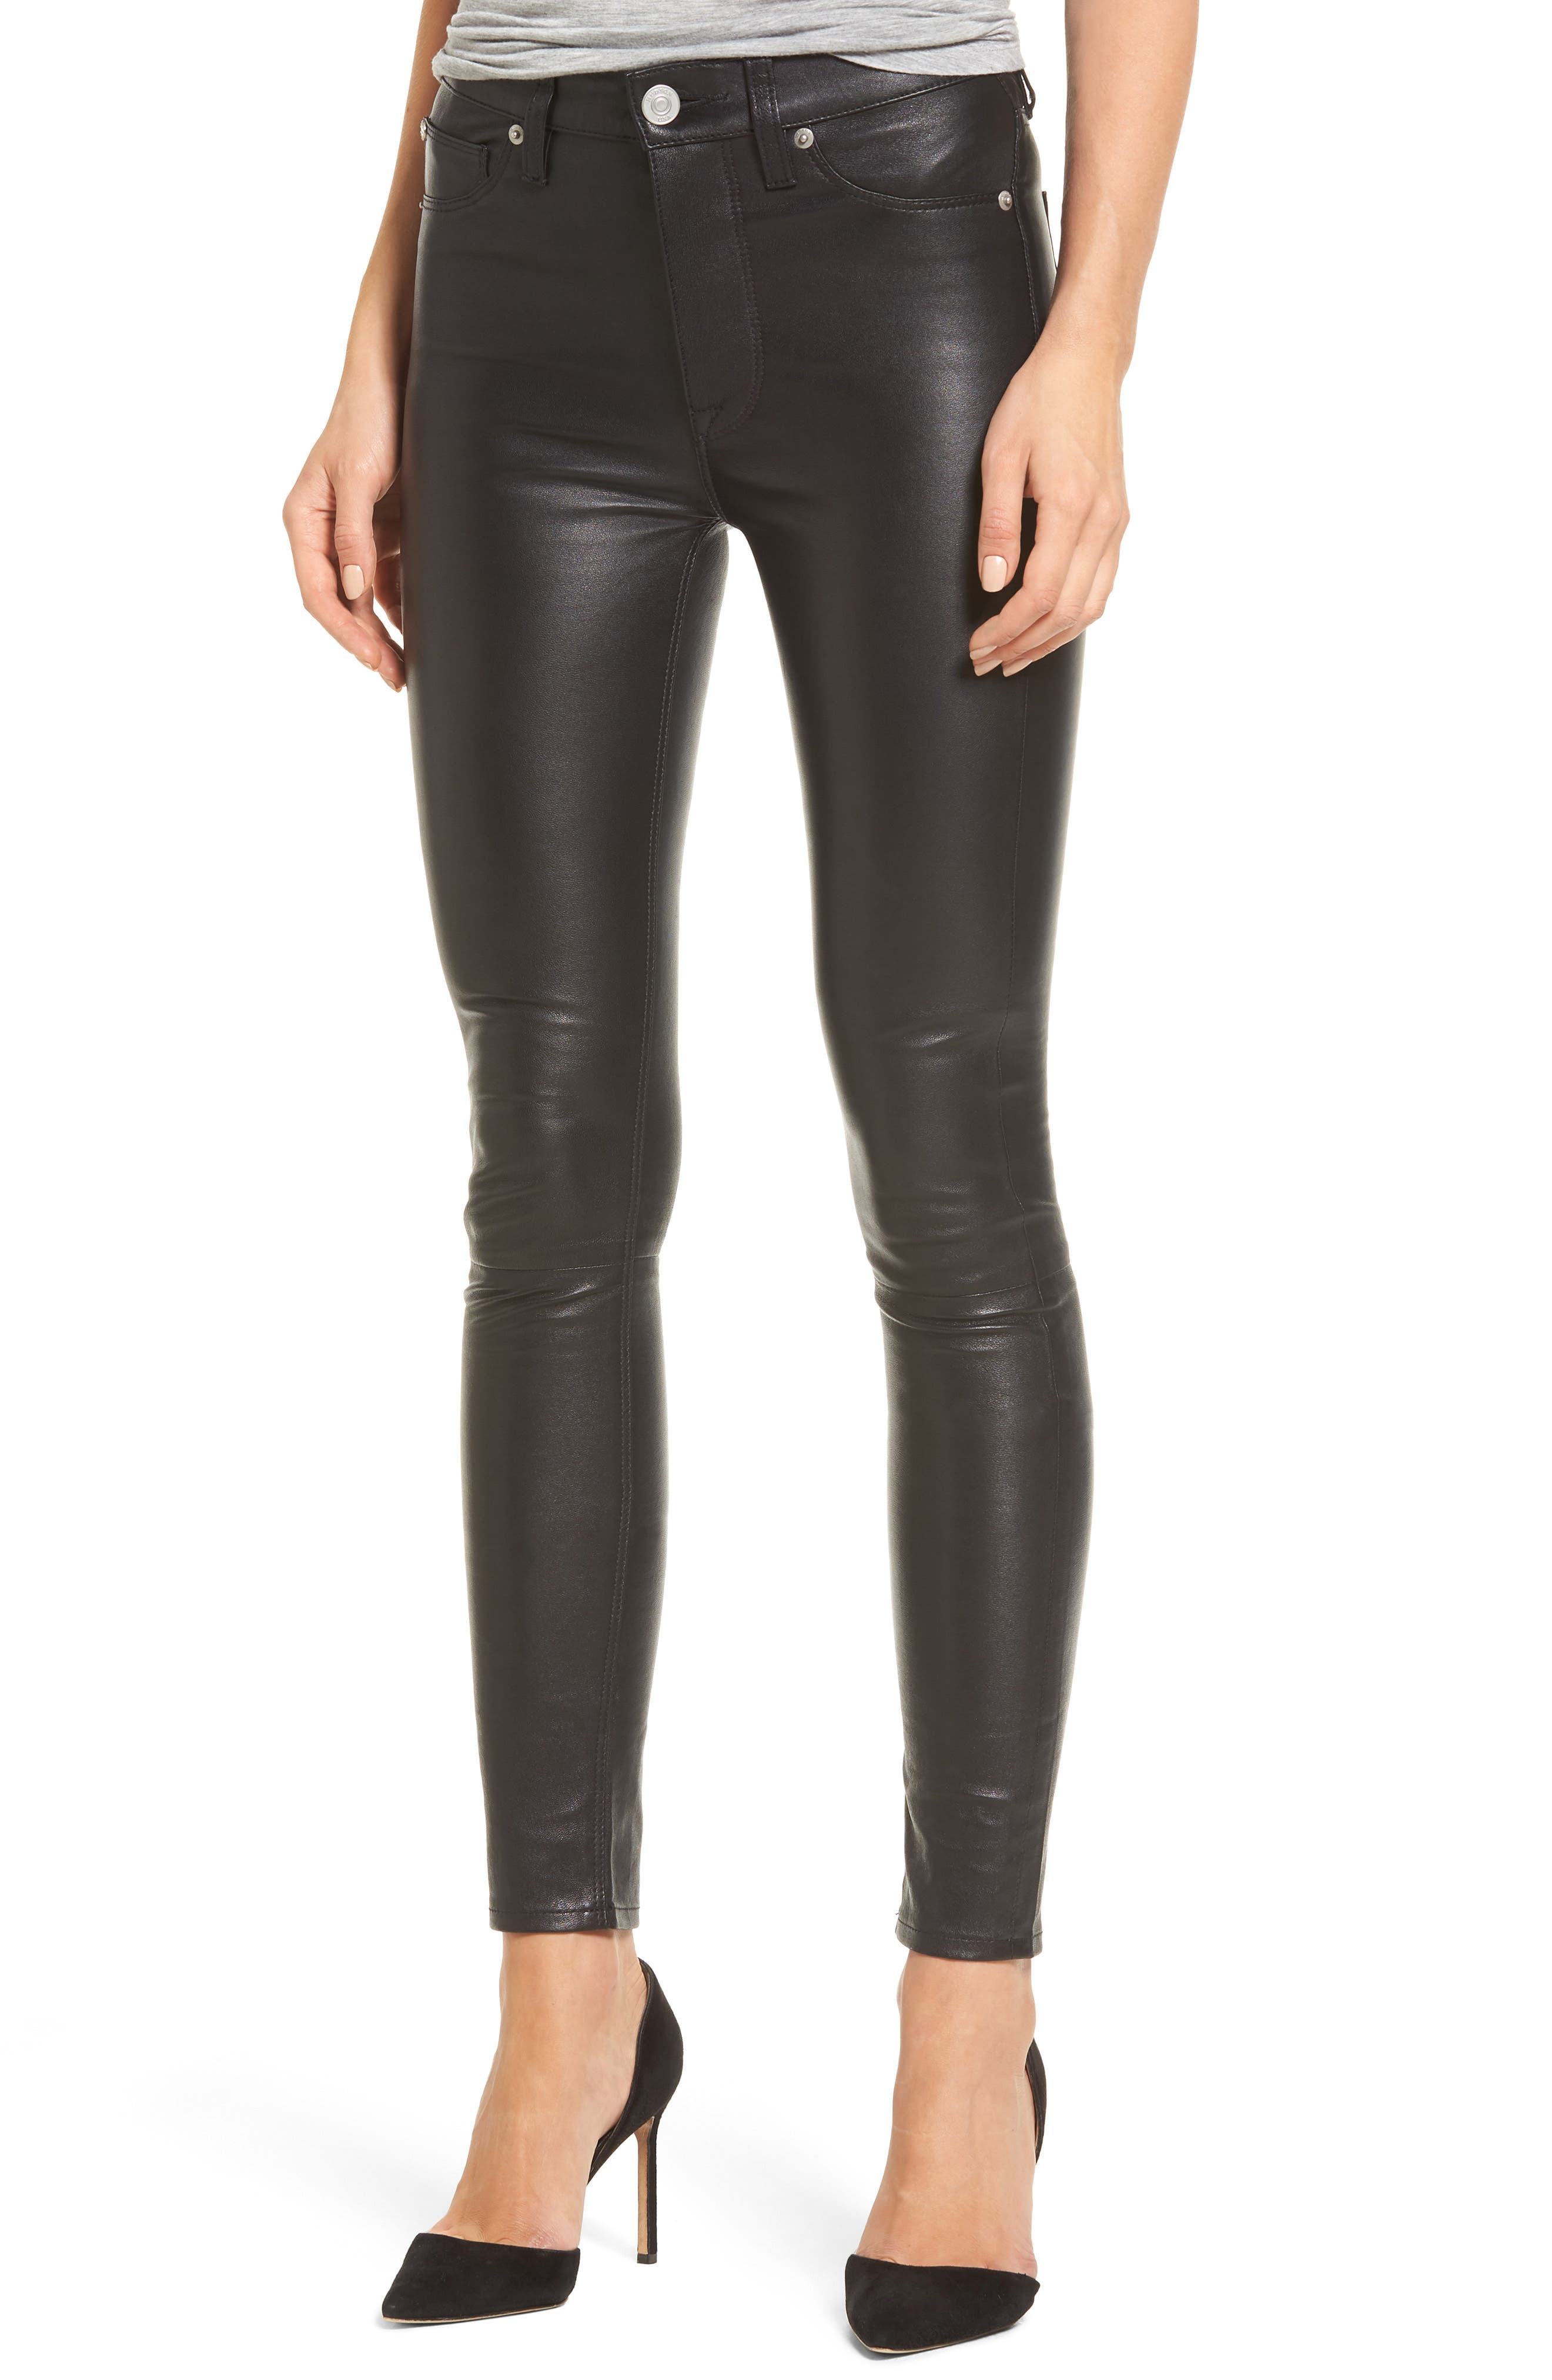 Barbara High Waist Ankle Skinny Leather Pants,                         Main,                         color, Black Leather